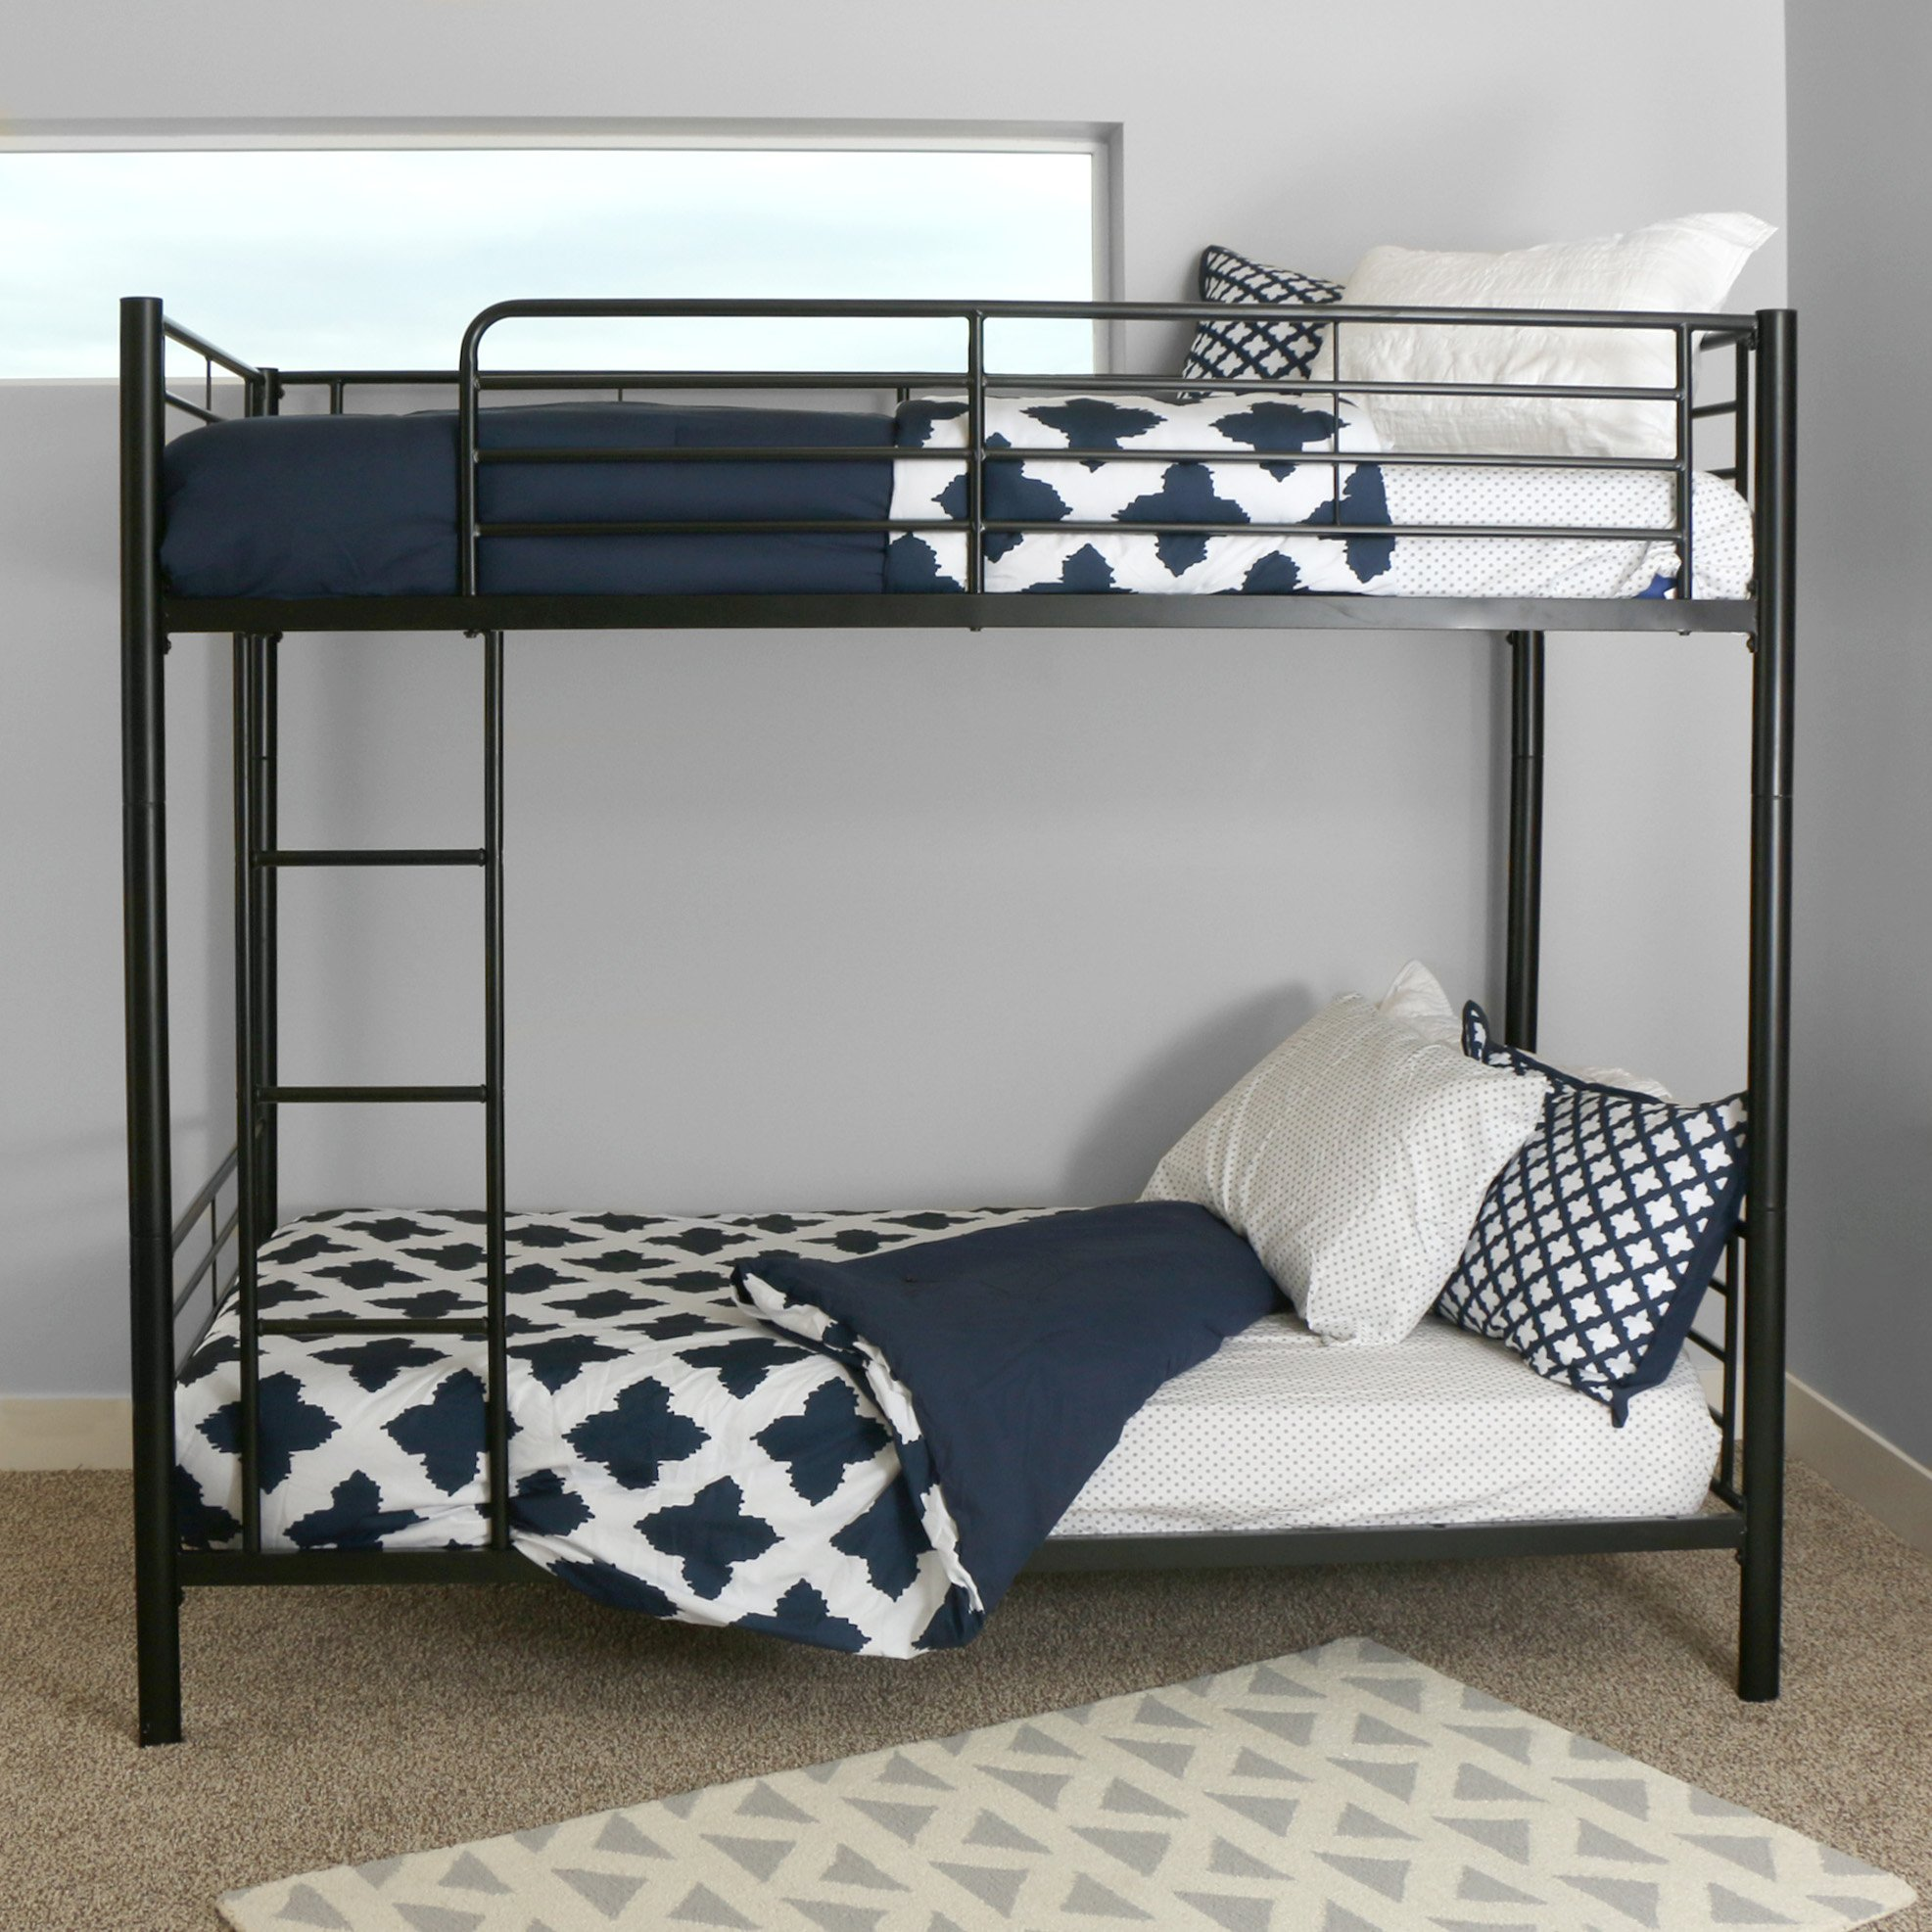 Sturdy Metal Twin-over-Twin Bunk Bed in Black Finish by Home Accent Furnishings (Image #4)